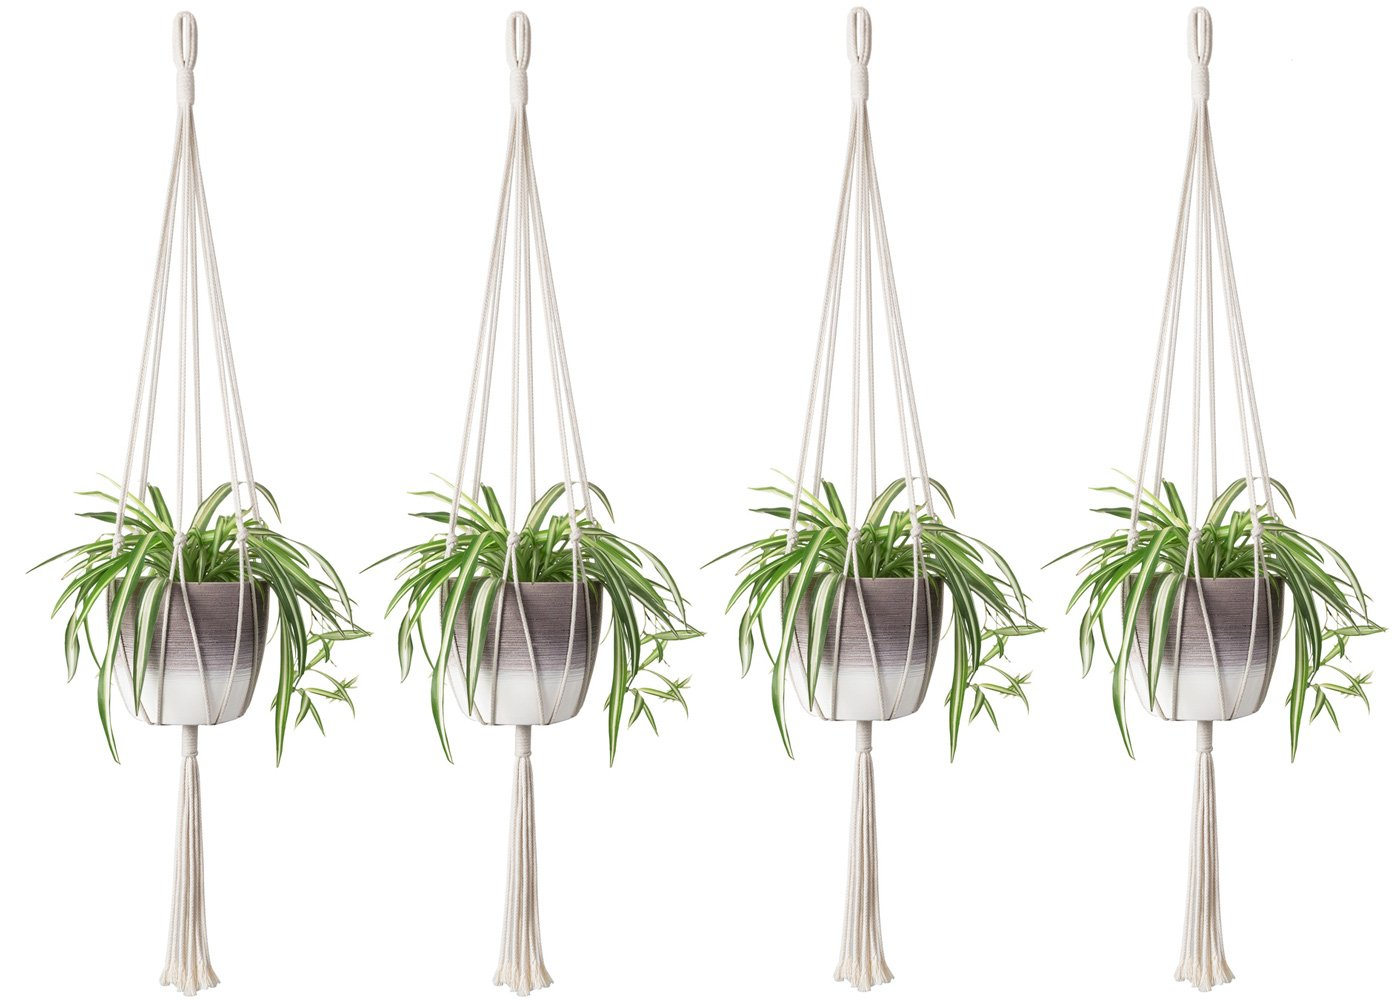 Mkono 4PCS Macrame Plant Hanger Indoor Outdoor Hanging Planter Basket Cotton Rope Home Decor 40 inch by Mkono